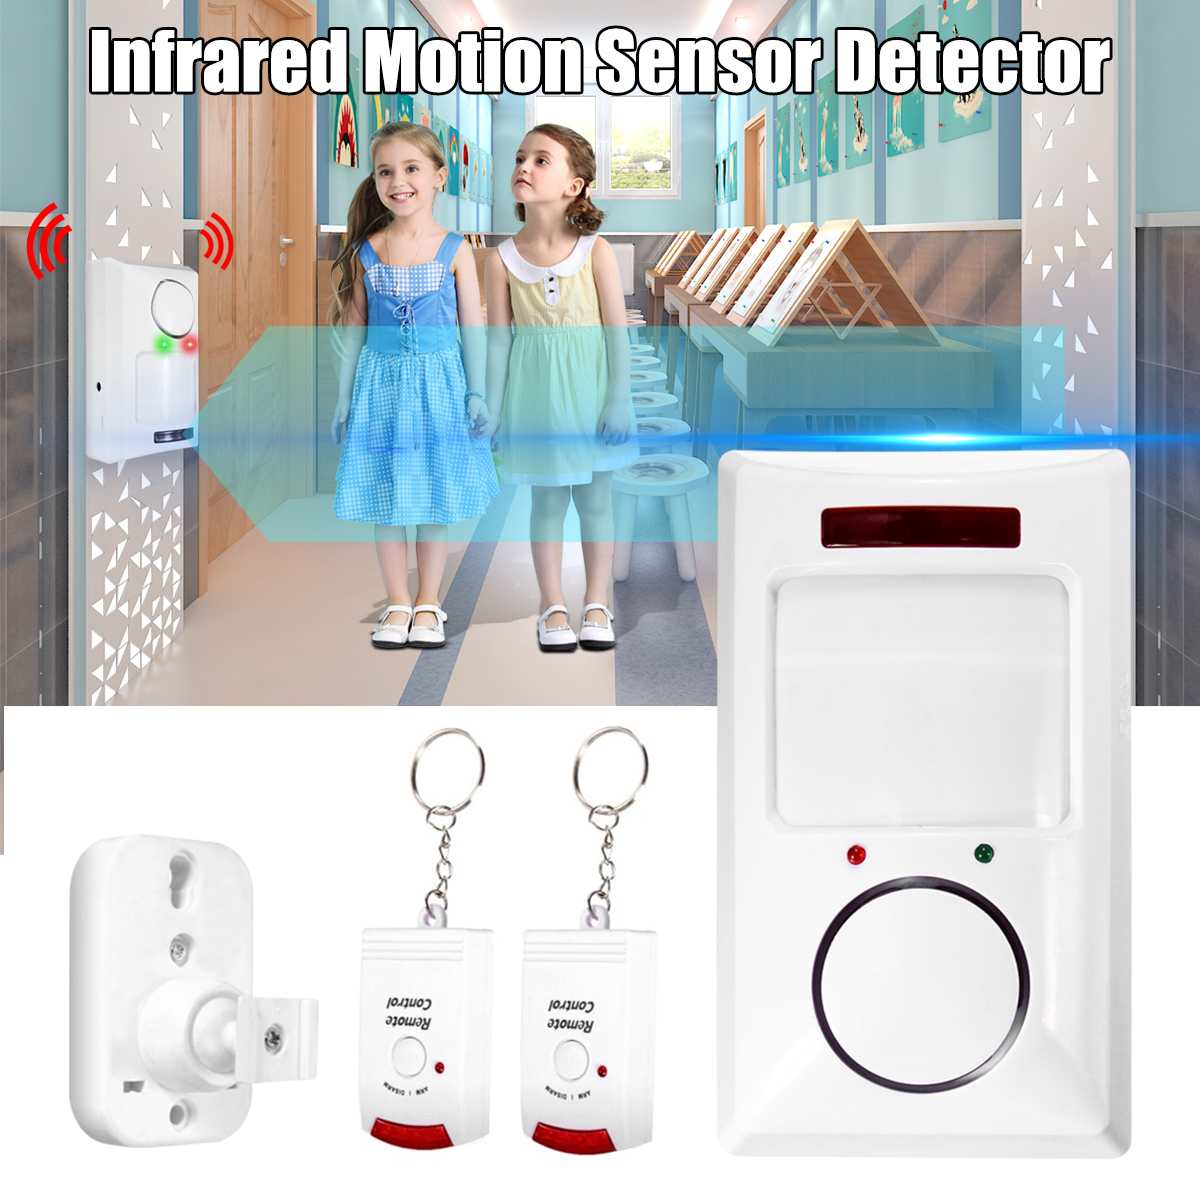 IR Infrared Motion Sensor Detector Wireless Remote Controlled Mini Alarm 105dB Loud Siren For Home S